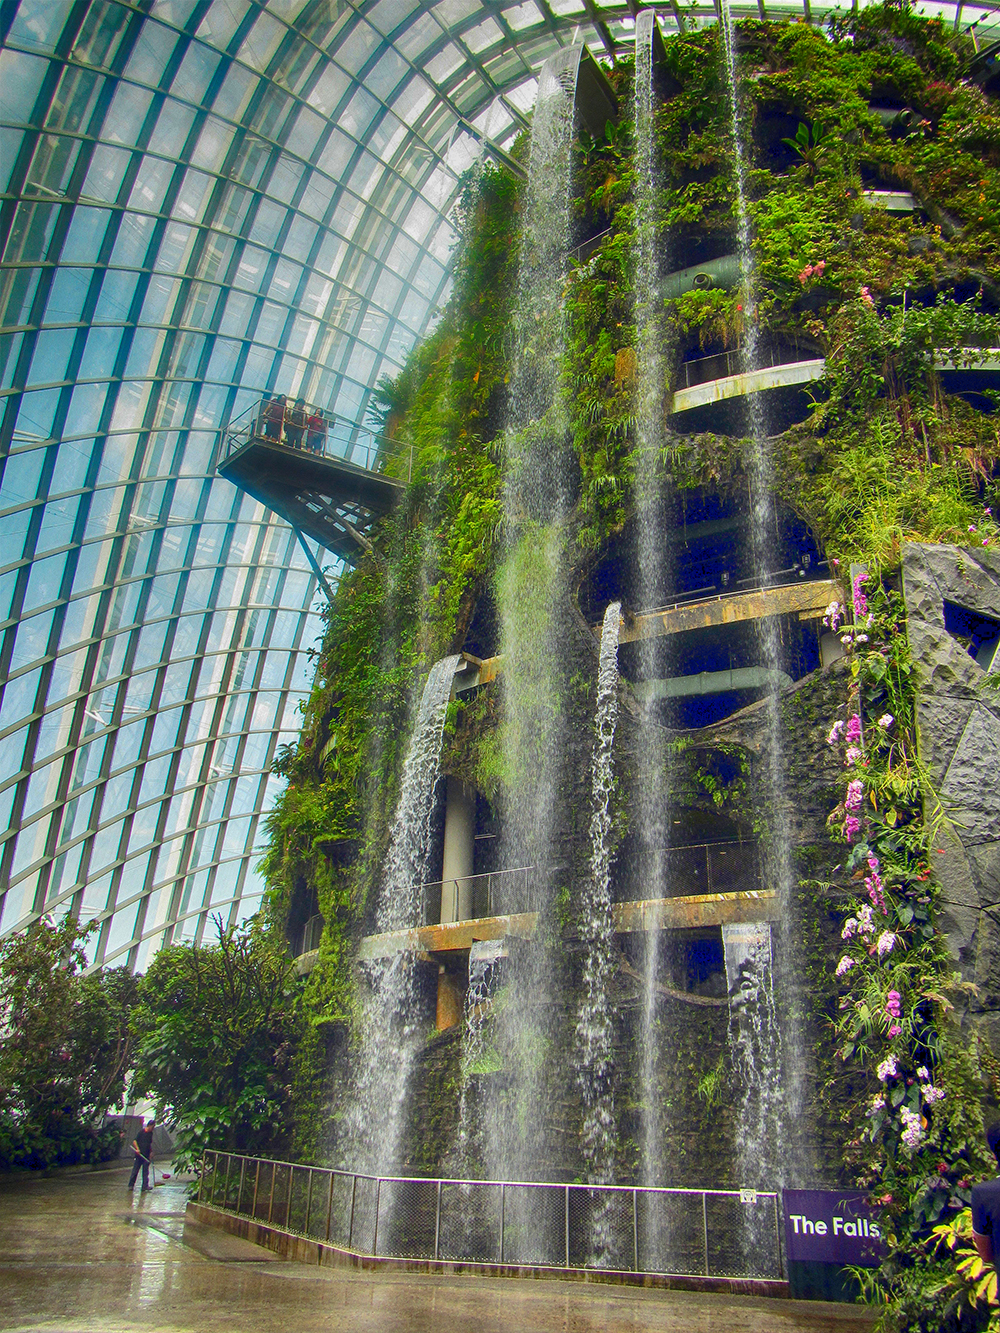 This waterfall in the Cloud Forest in Singapore is the tallest indoor waterfall in the world